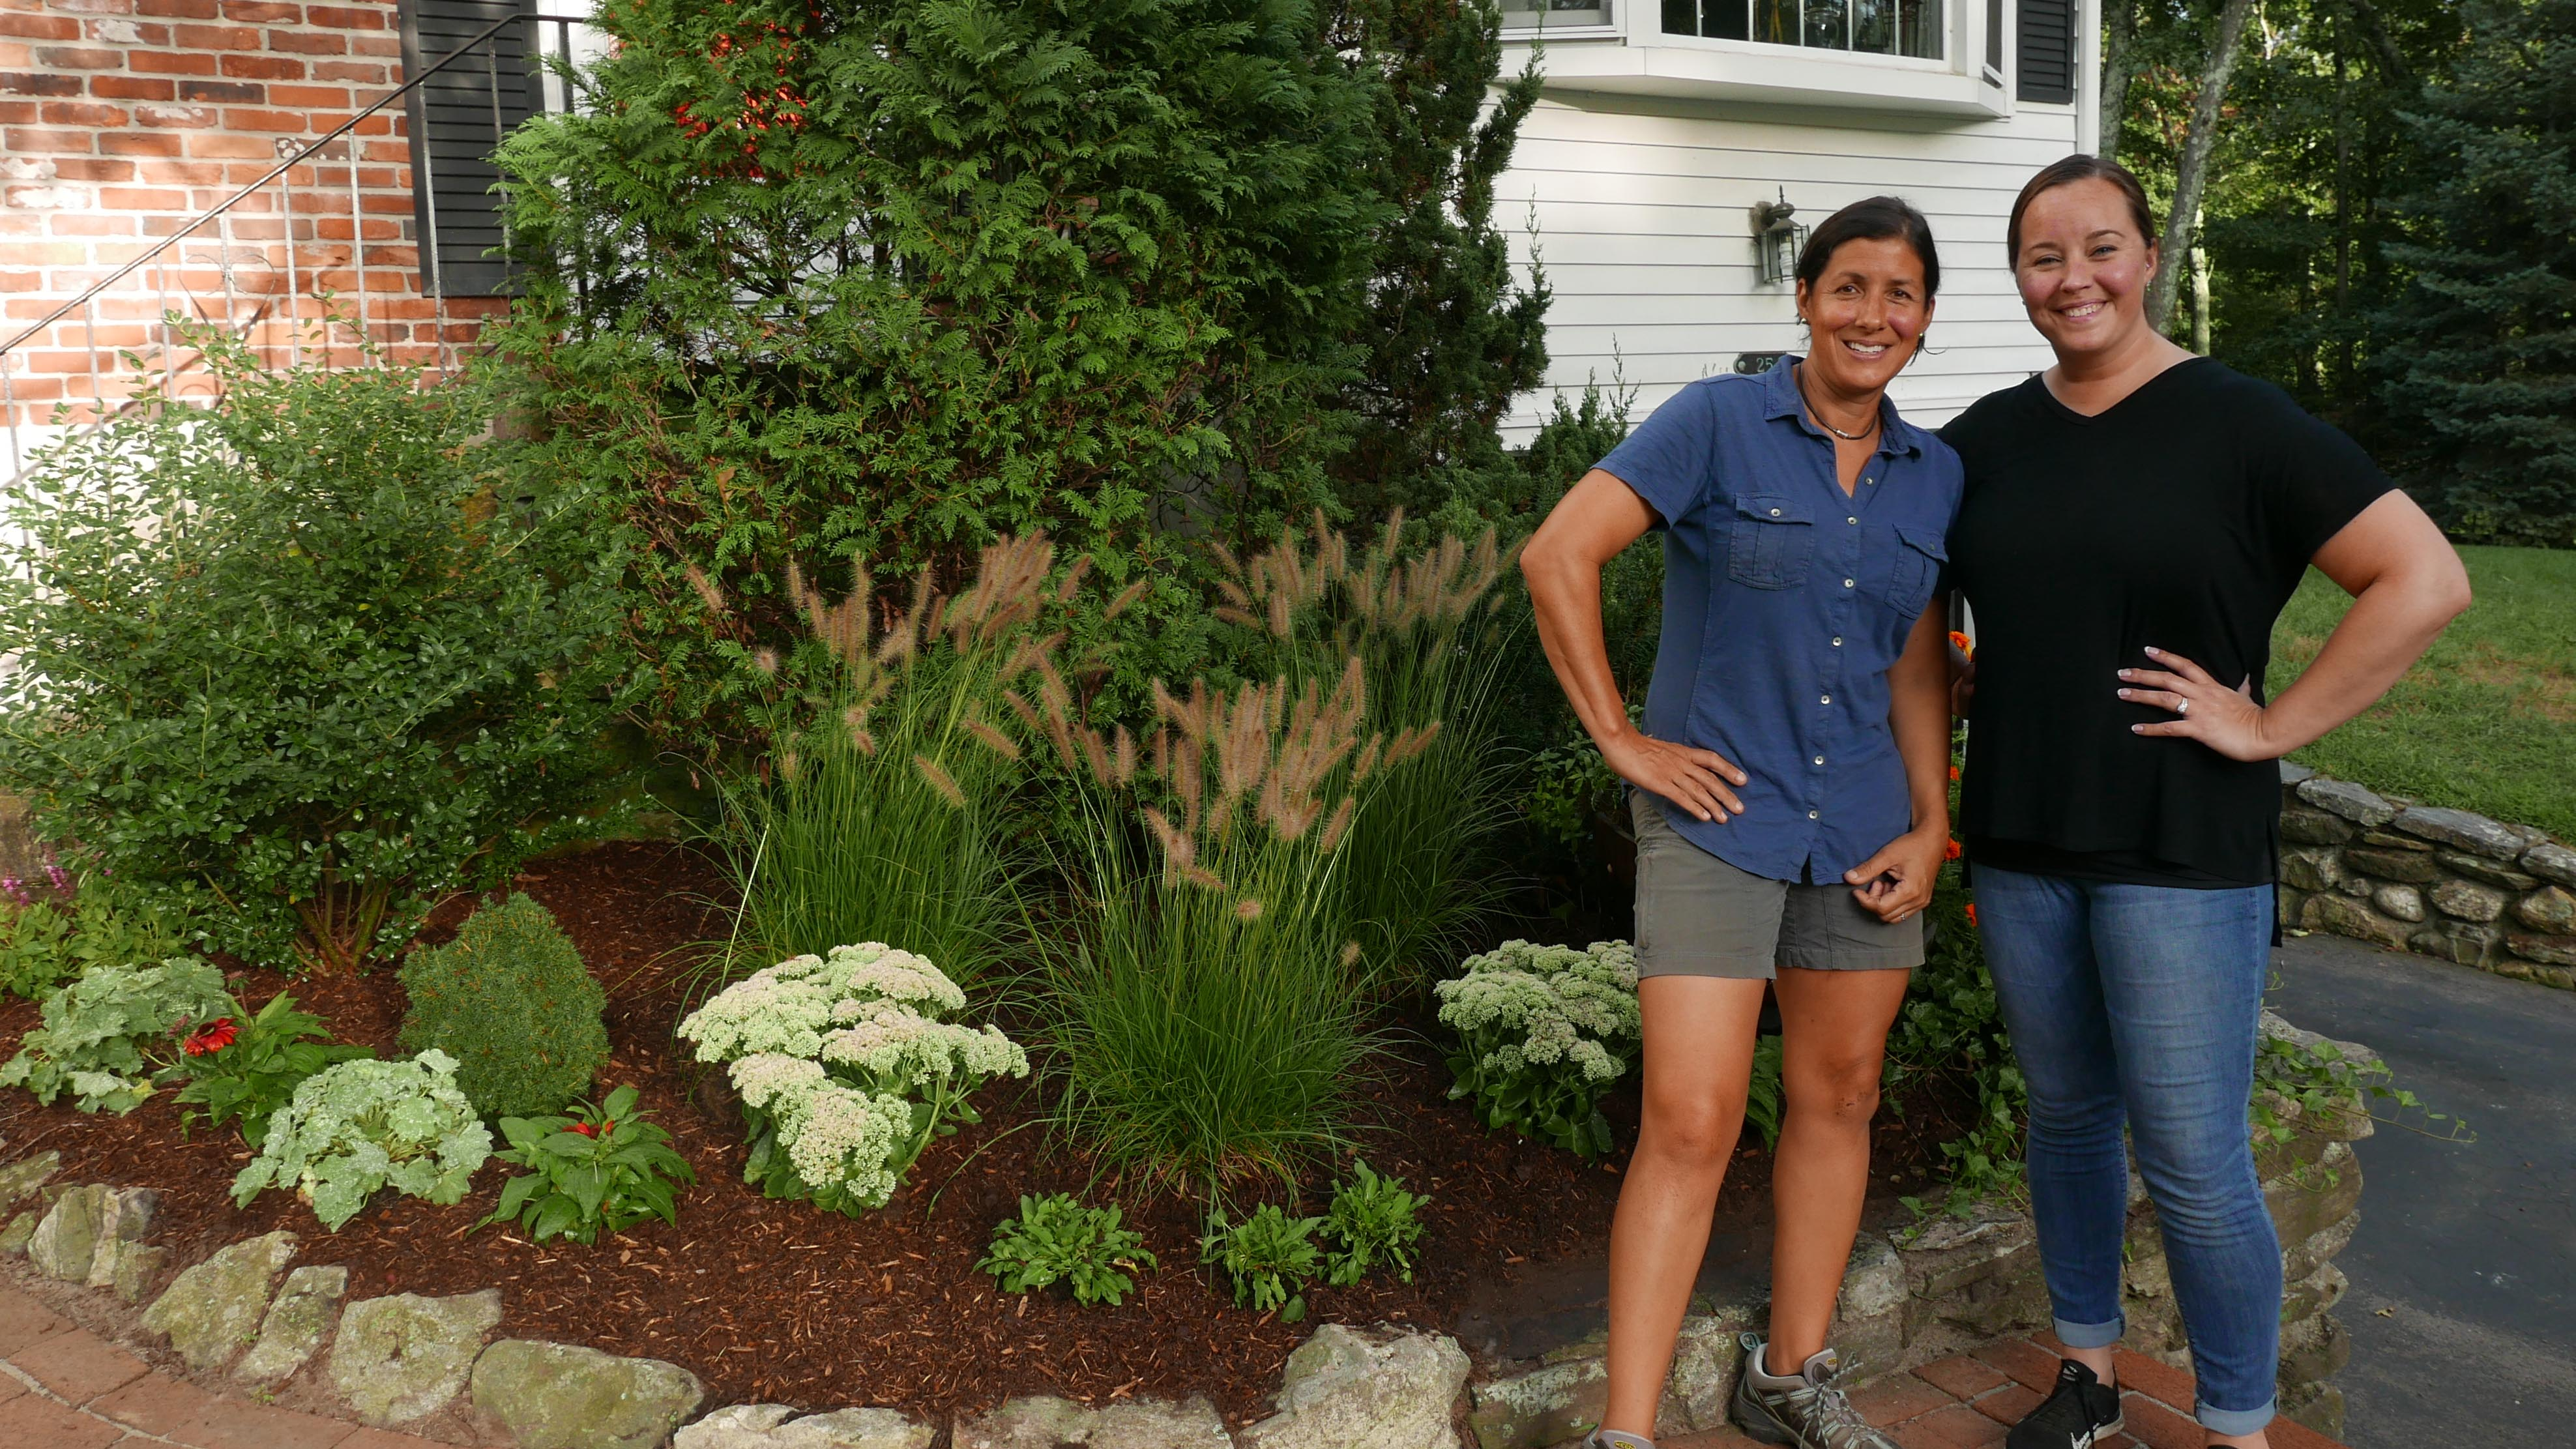 Jenn Nawada helps to replace and improve foundation plantings